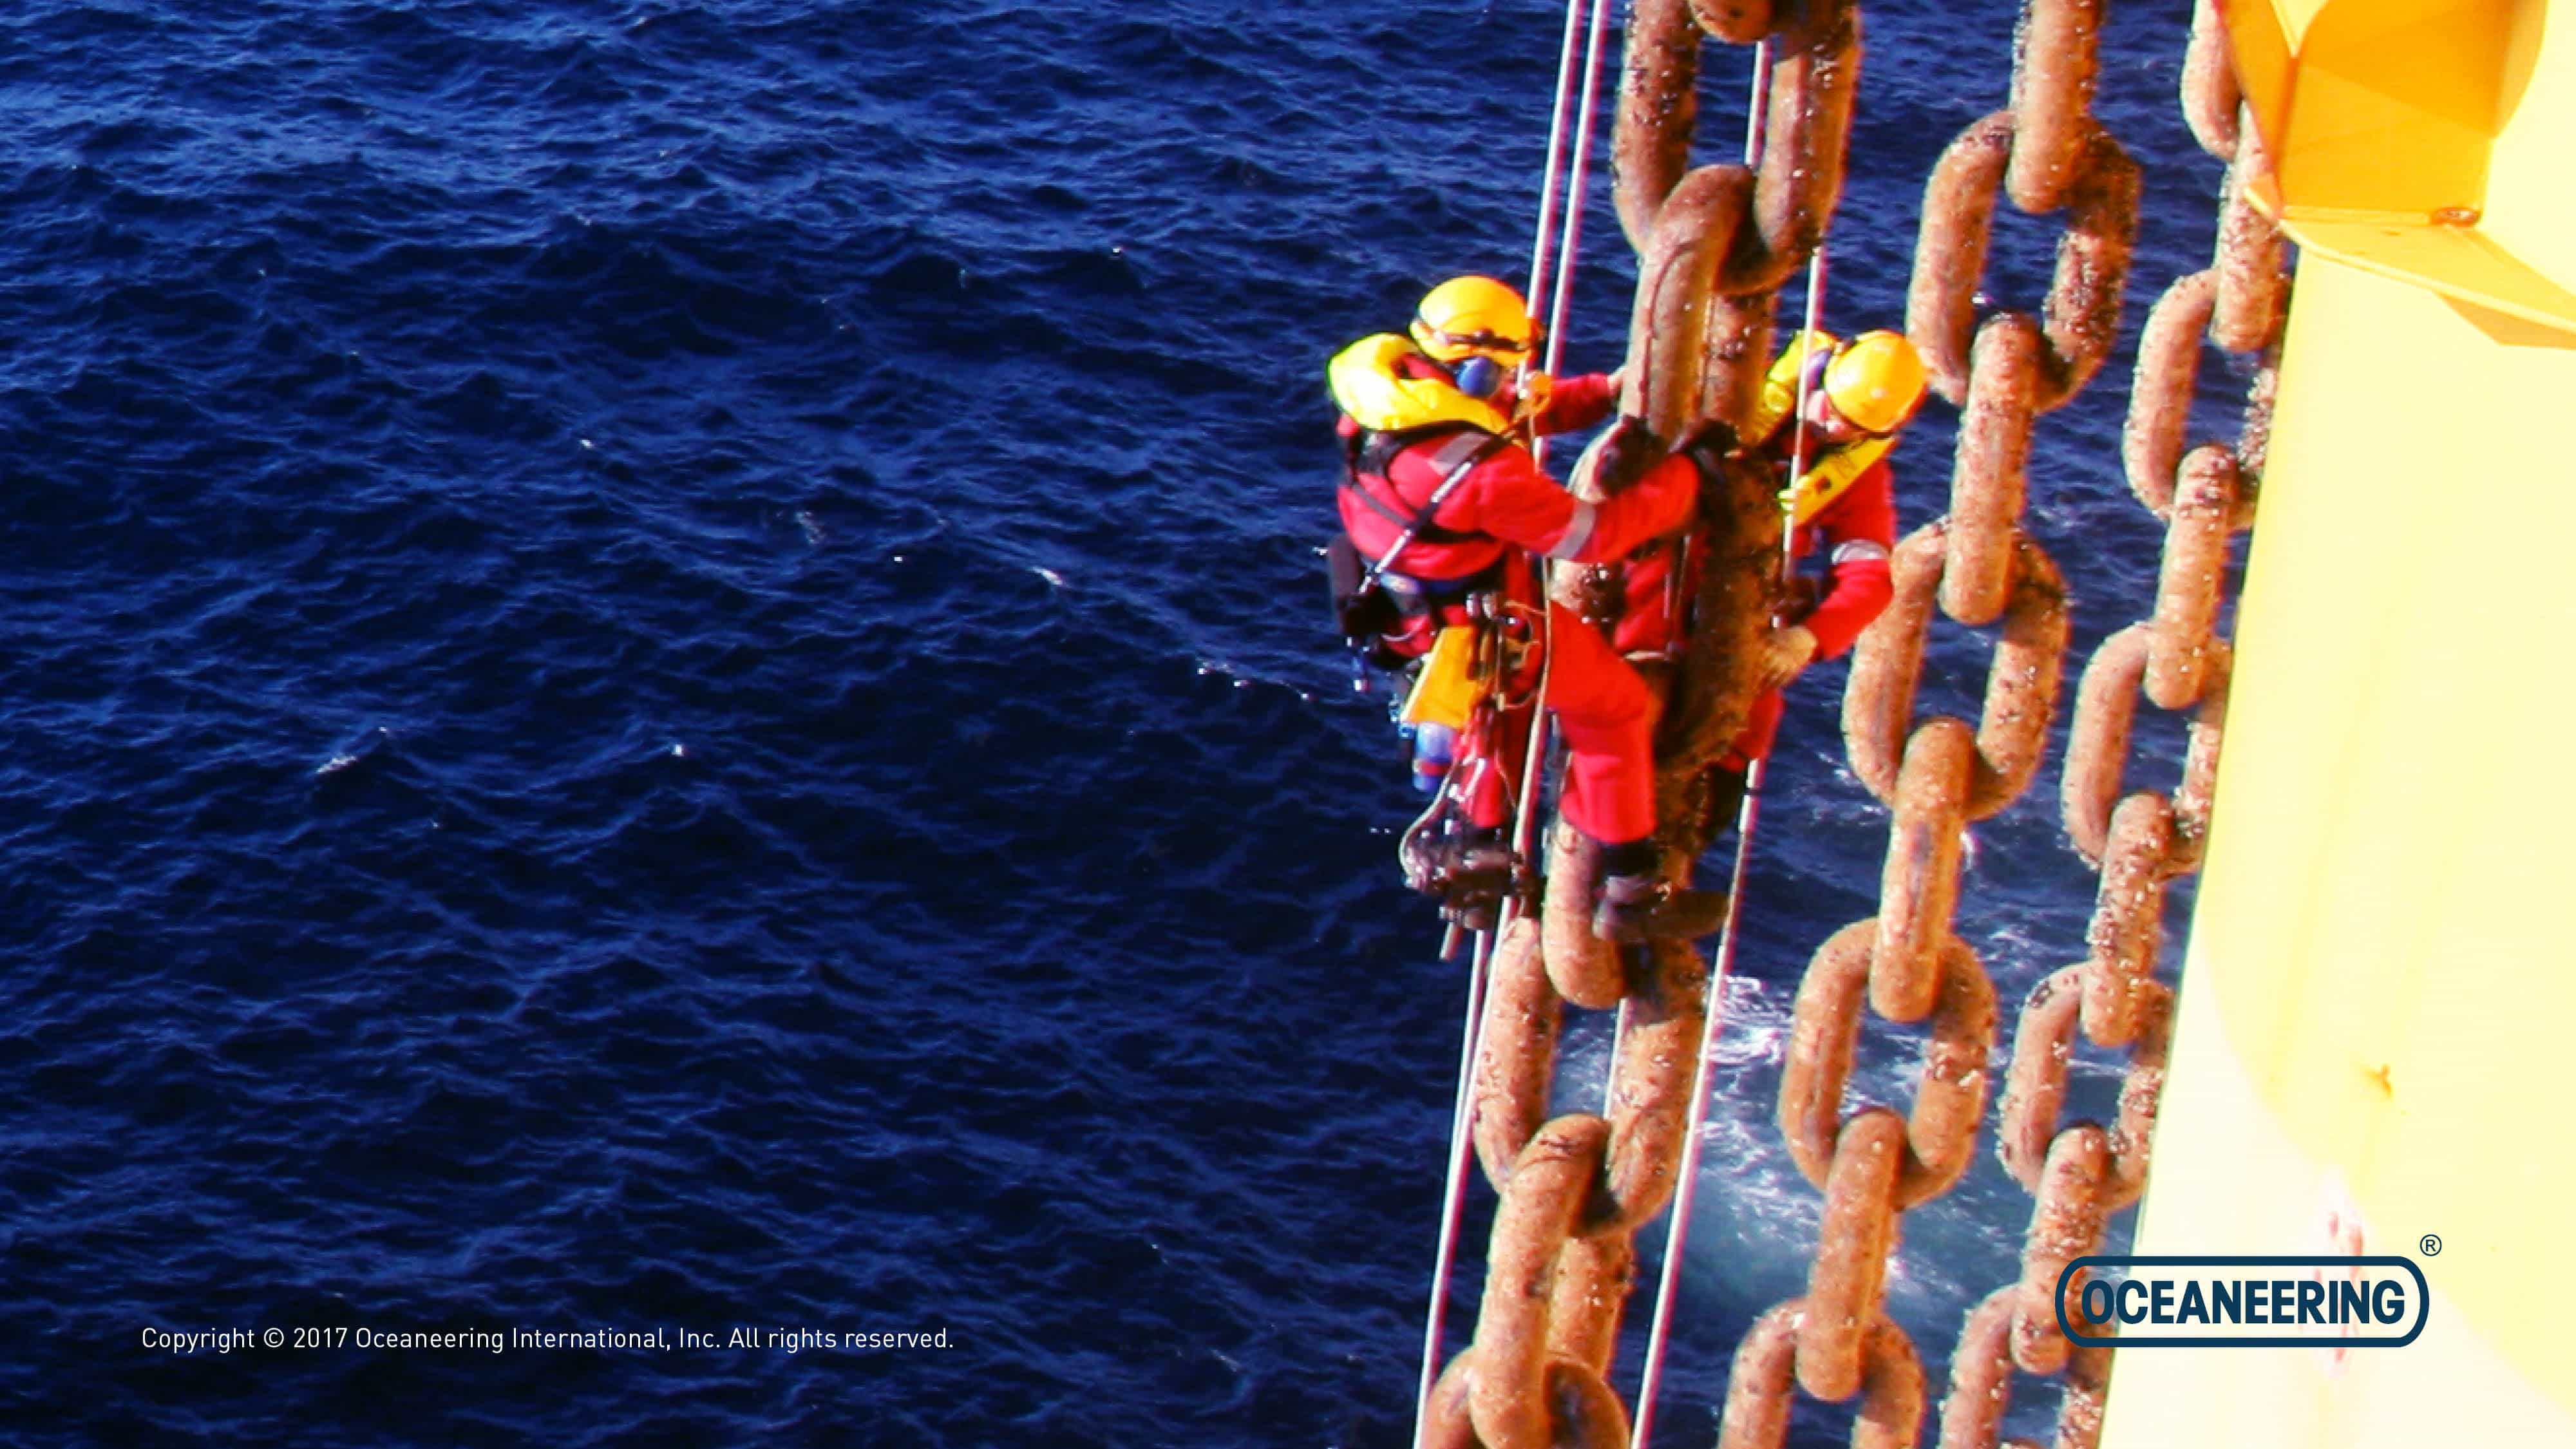 oceaneering, download, asset integrity, rope access, background